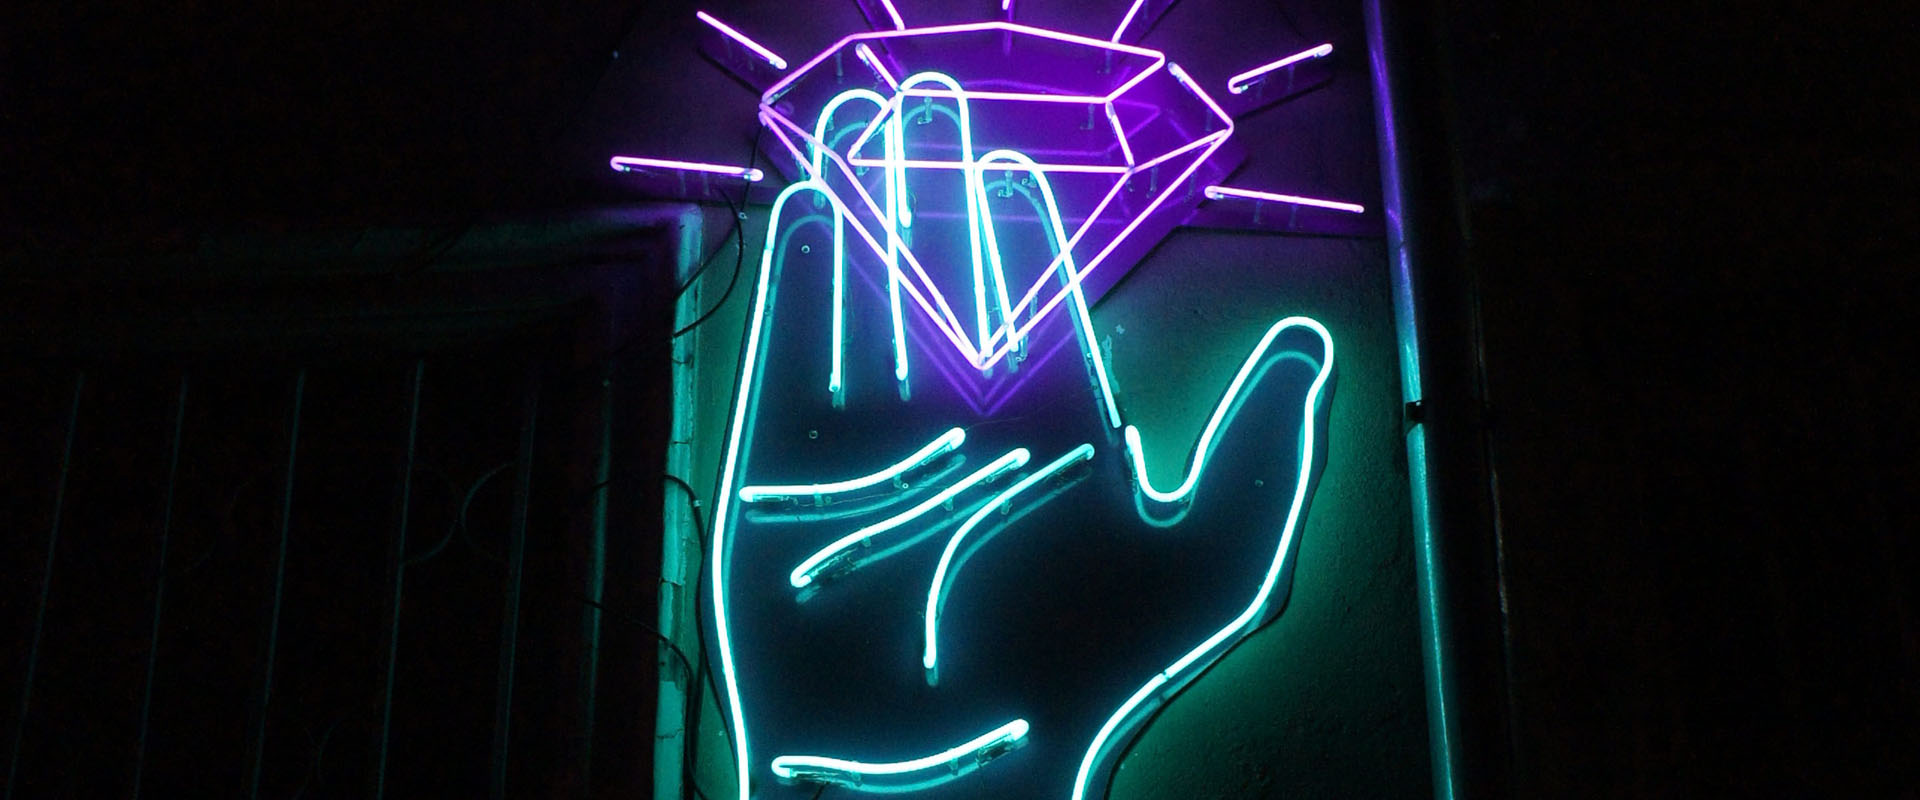 Neon sign of a hand capturing a diamond representing the brilliant basics